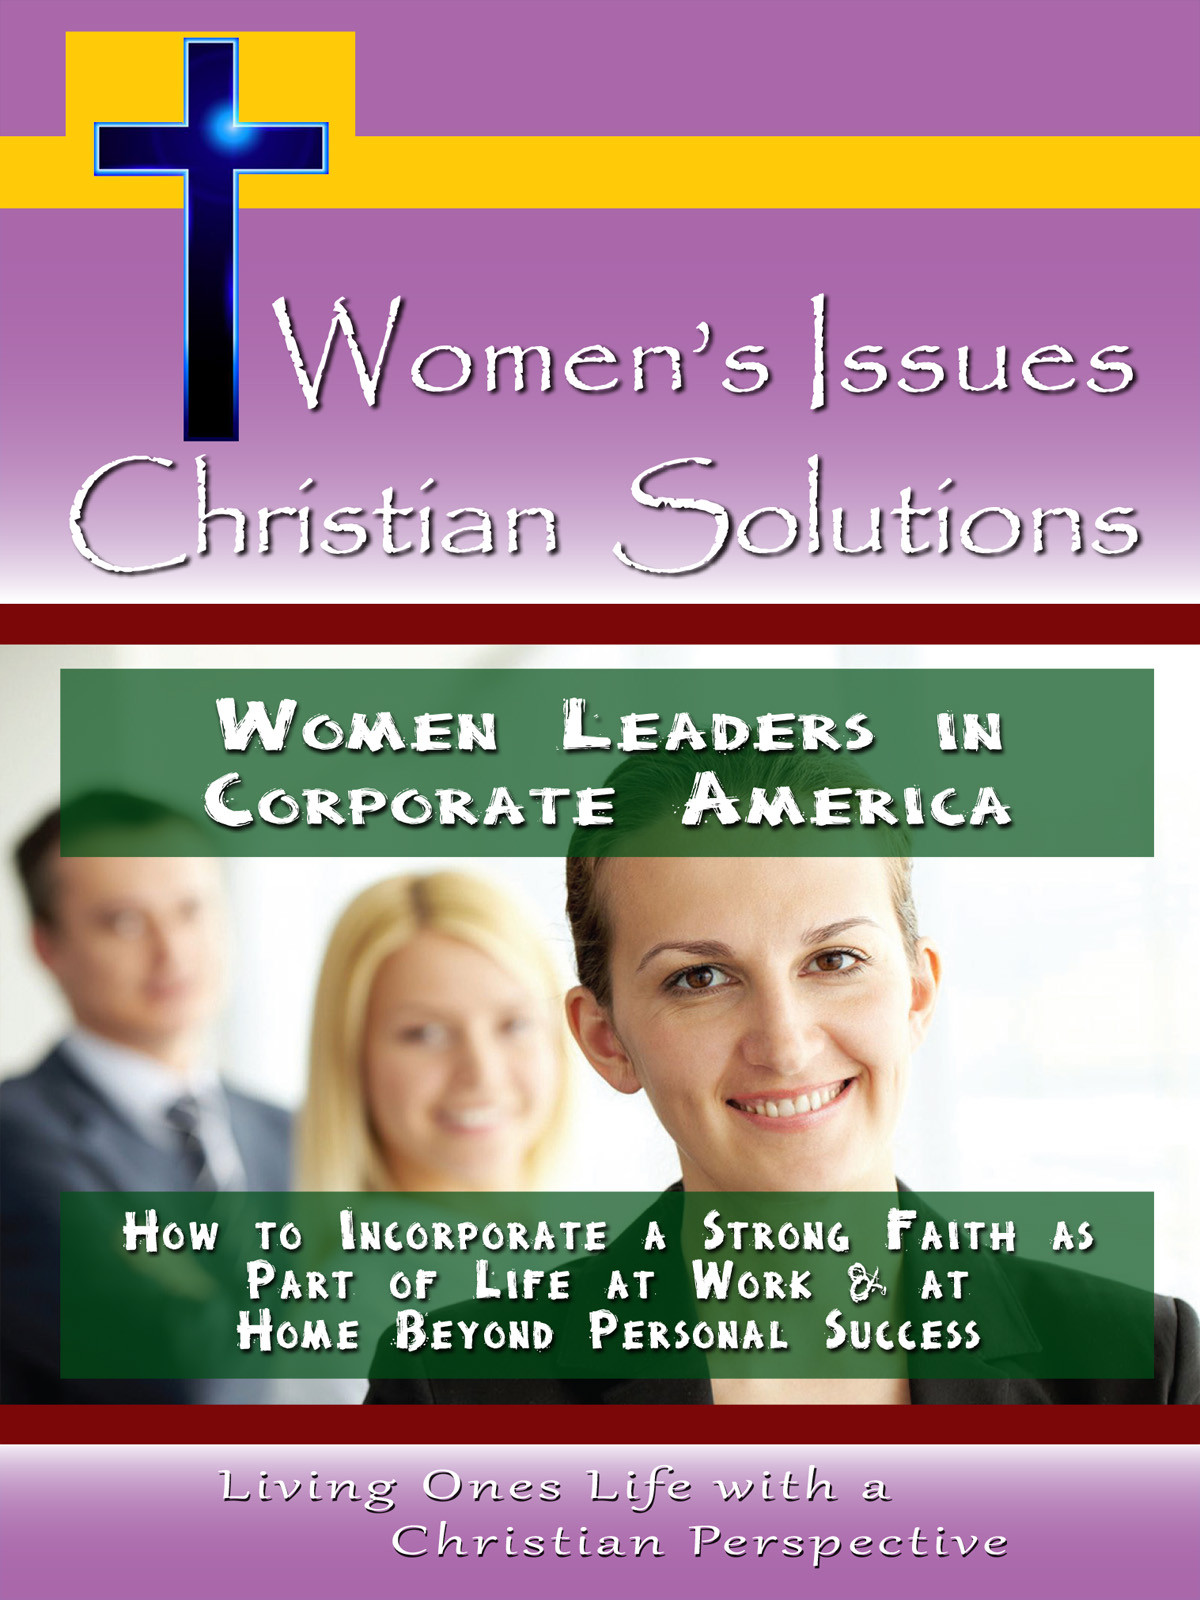 CH10035 - Women Leaders in Corporate America How to Incorporate a Strong faith as part of Life at Work & at Home